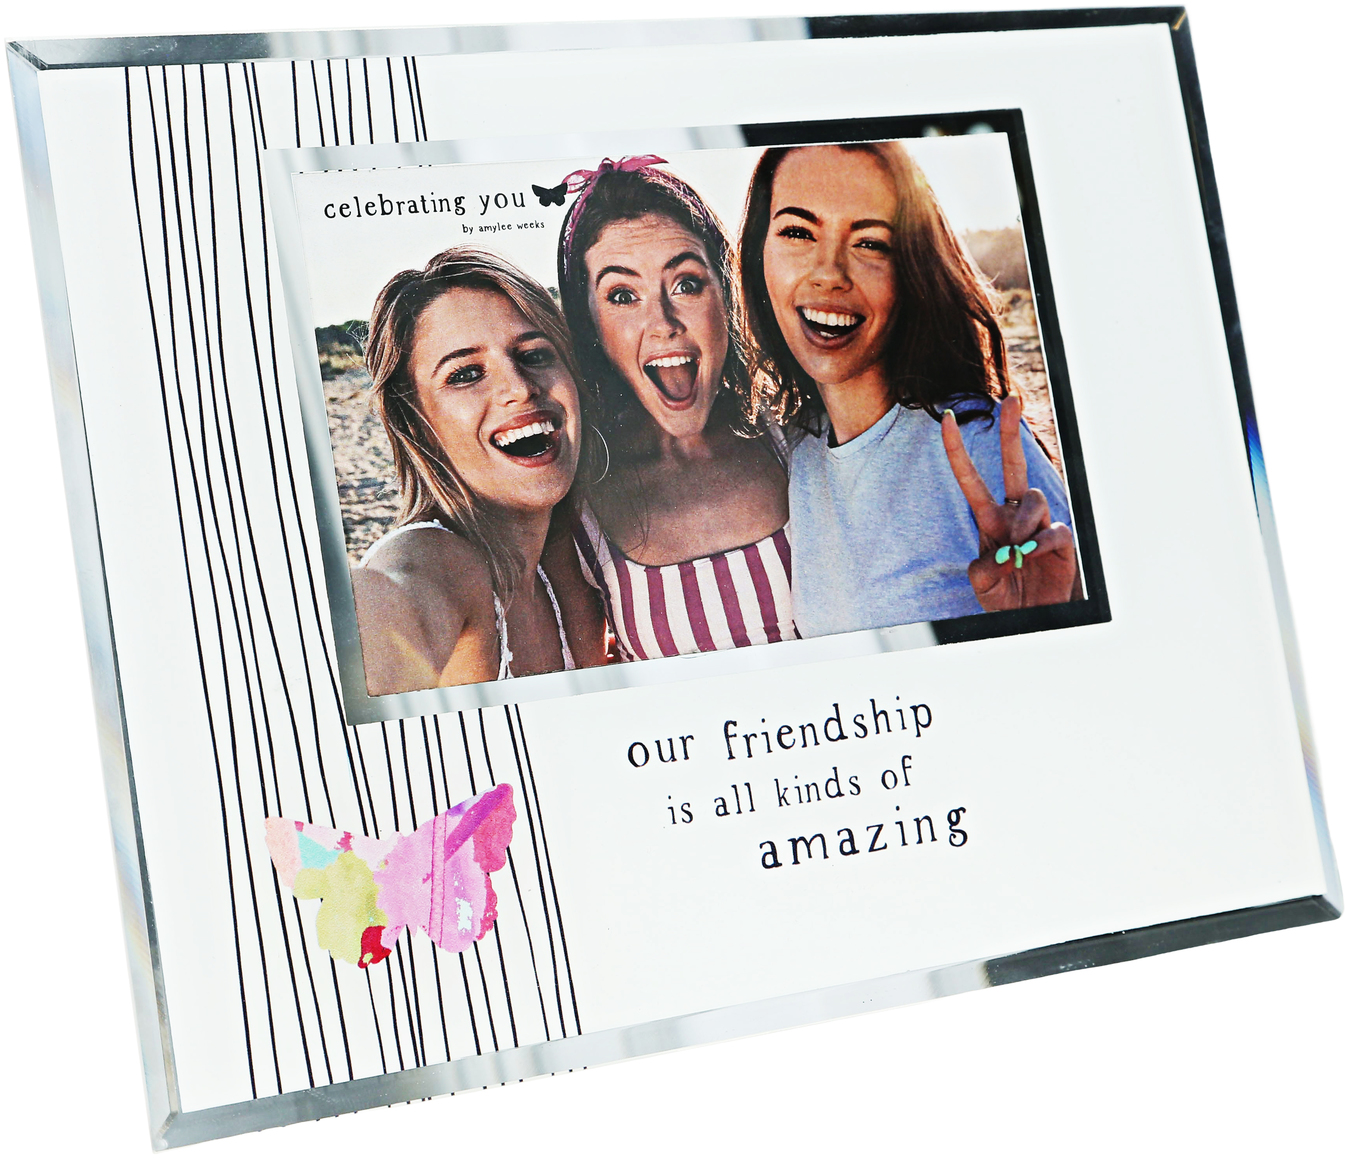 "Friendship by Celebrating You - Friendship - 9.25"" x 7.25"" Frame (Holds 6"" x 4"" Photo)"